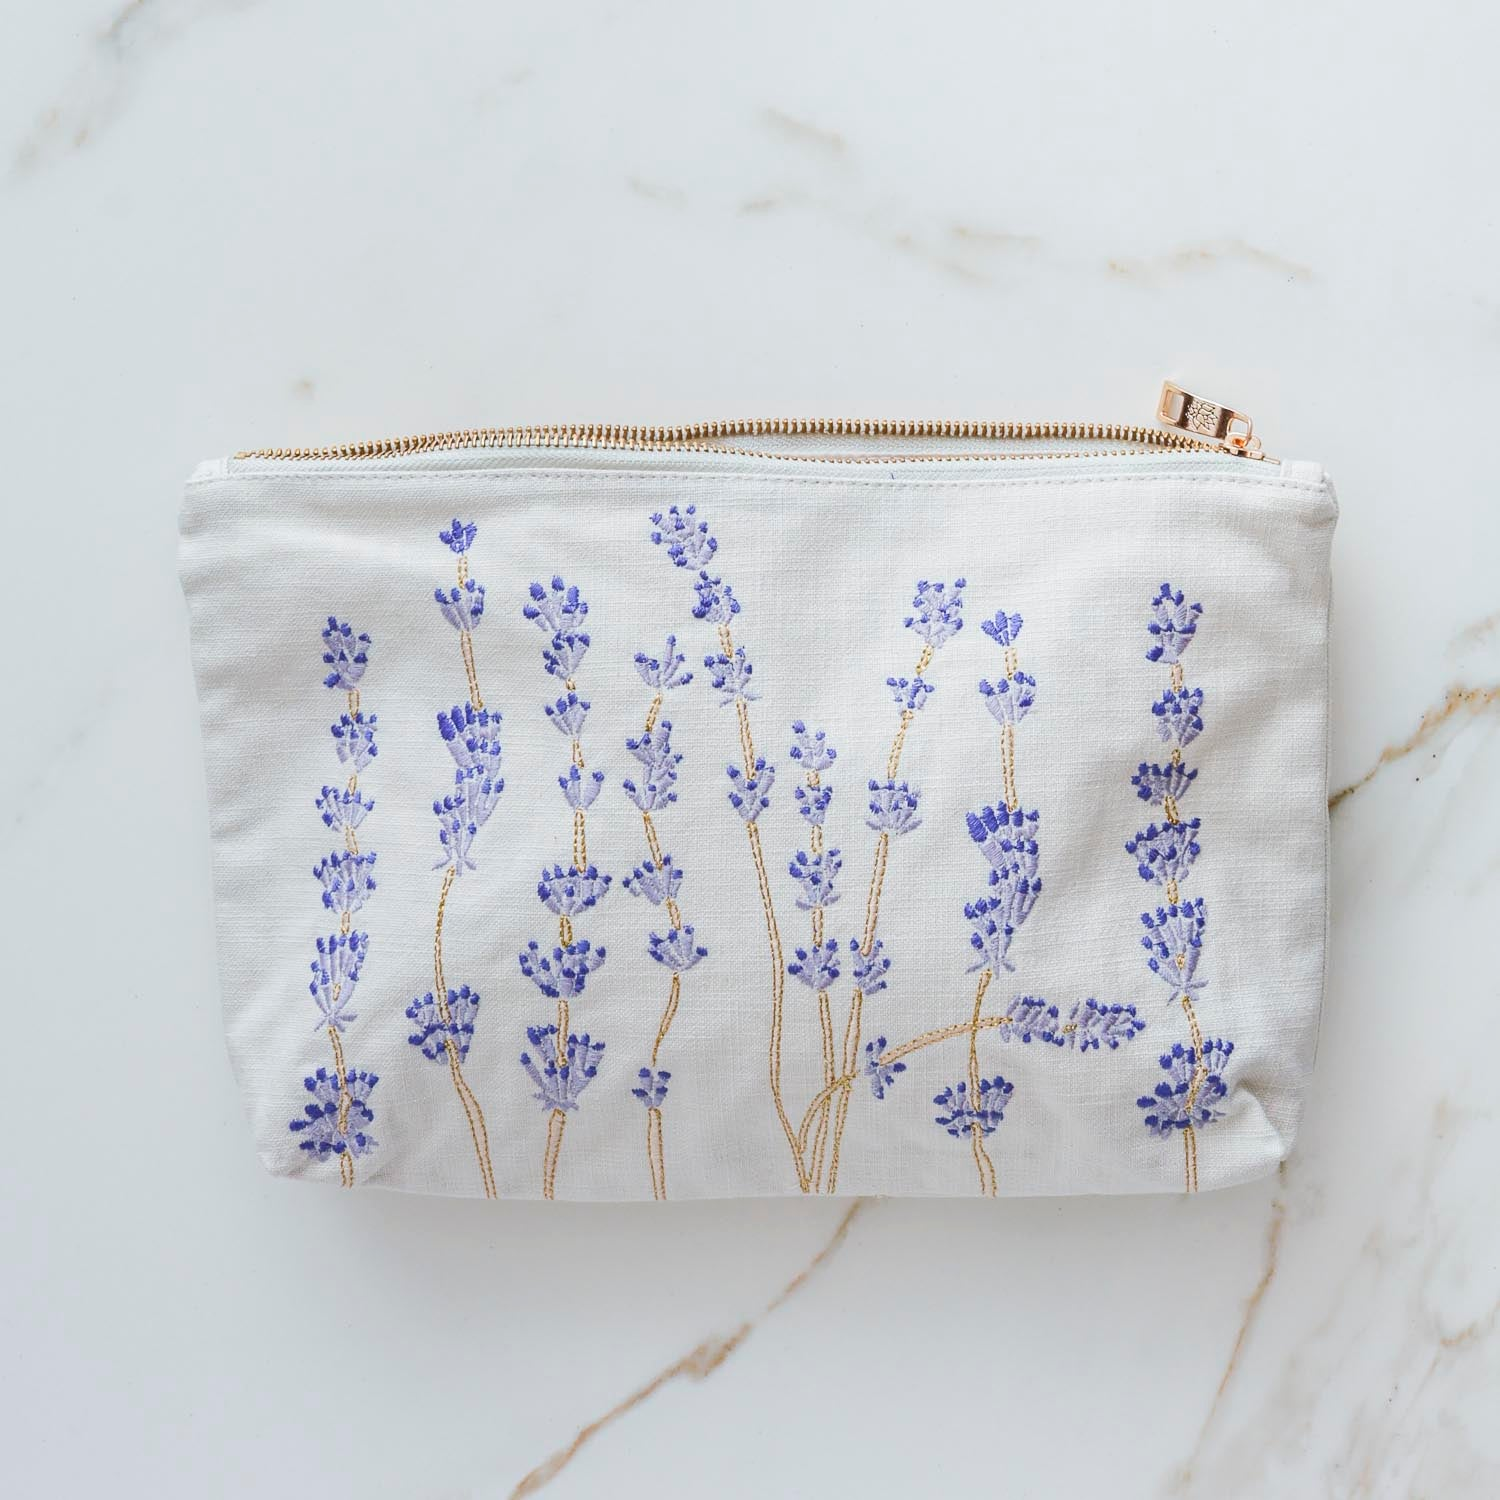 LARGE LAVENDER EMBROIDERED BAG